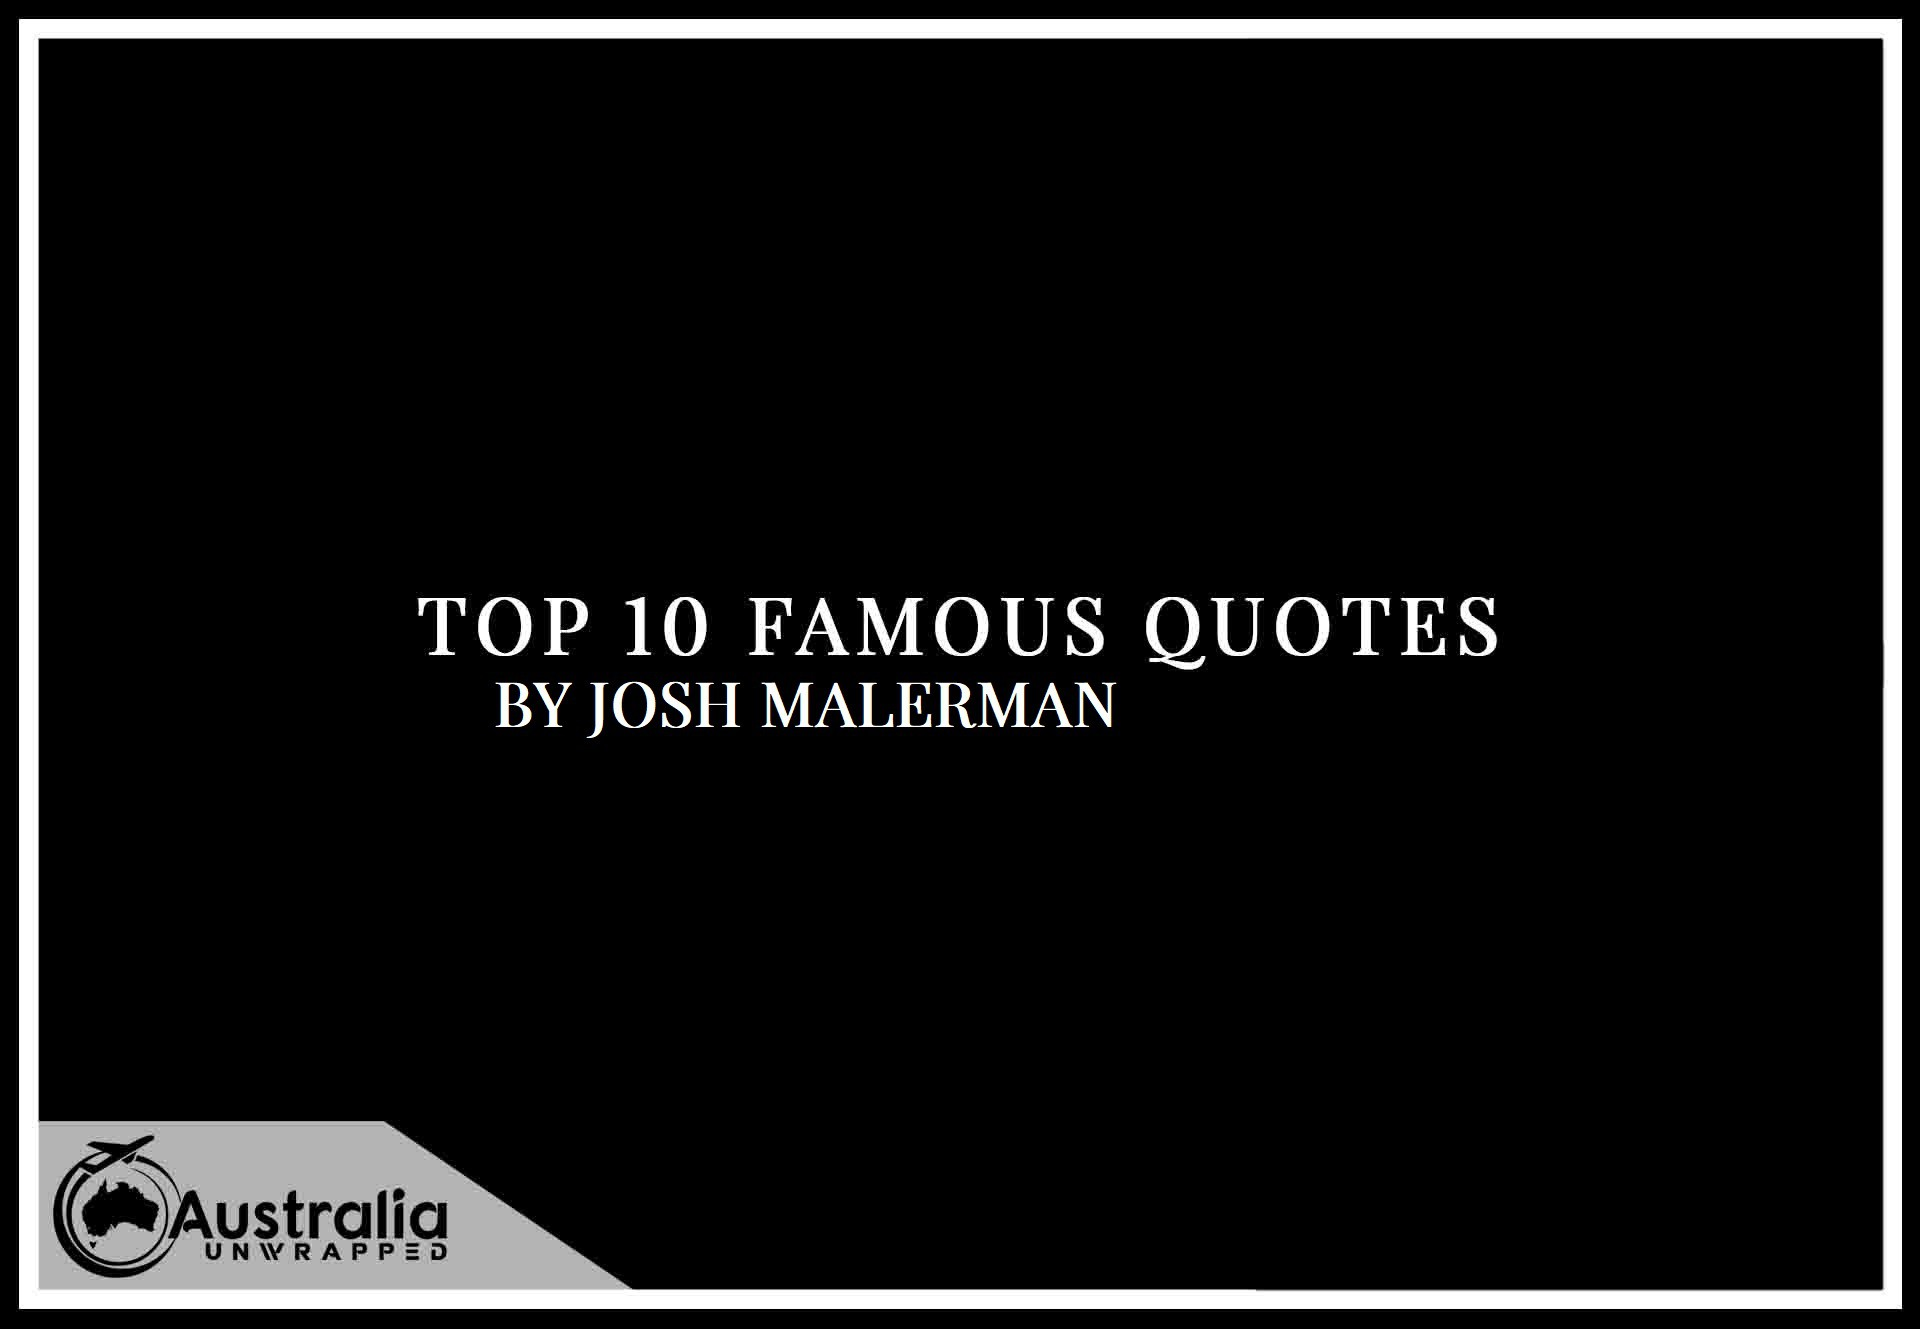 Top 10 Famous Quotes by Author Josh Malerman